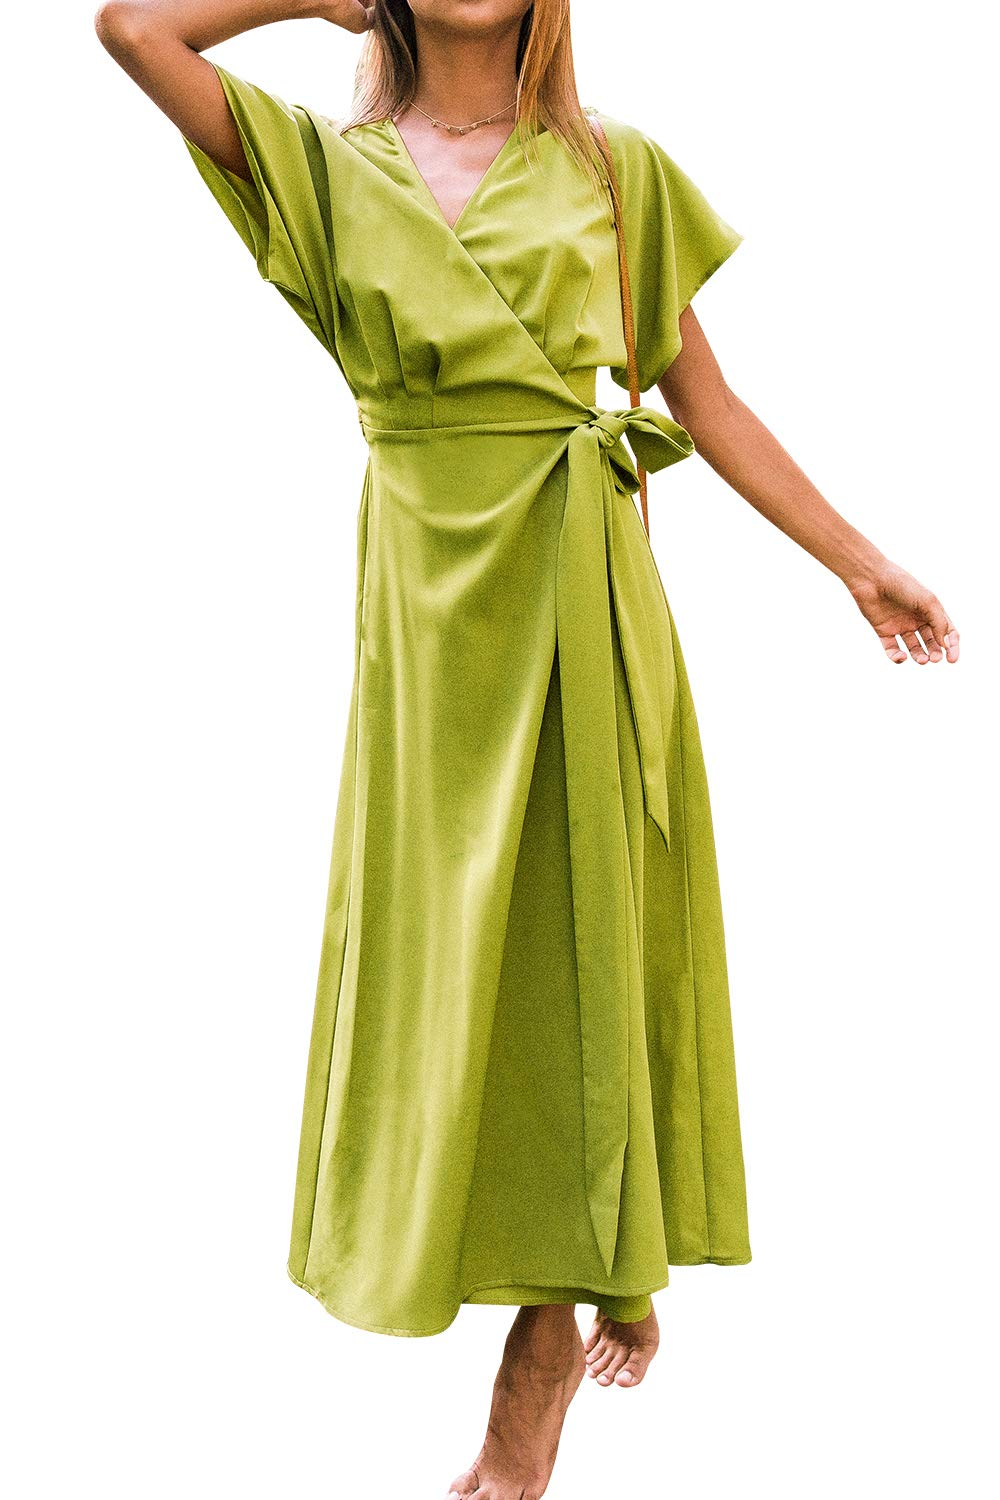 Available at Amazon: CUPSHE Women's Green Wrap V Neck Self Tie Short Sleeve Maxi Dress